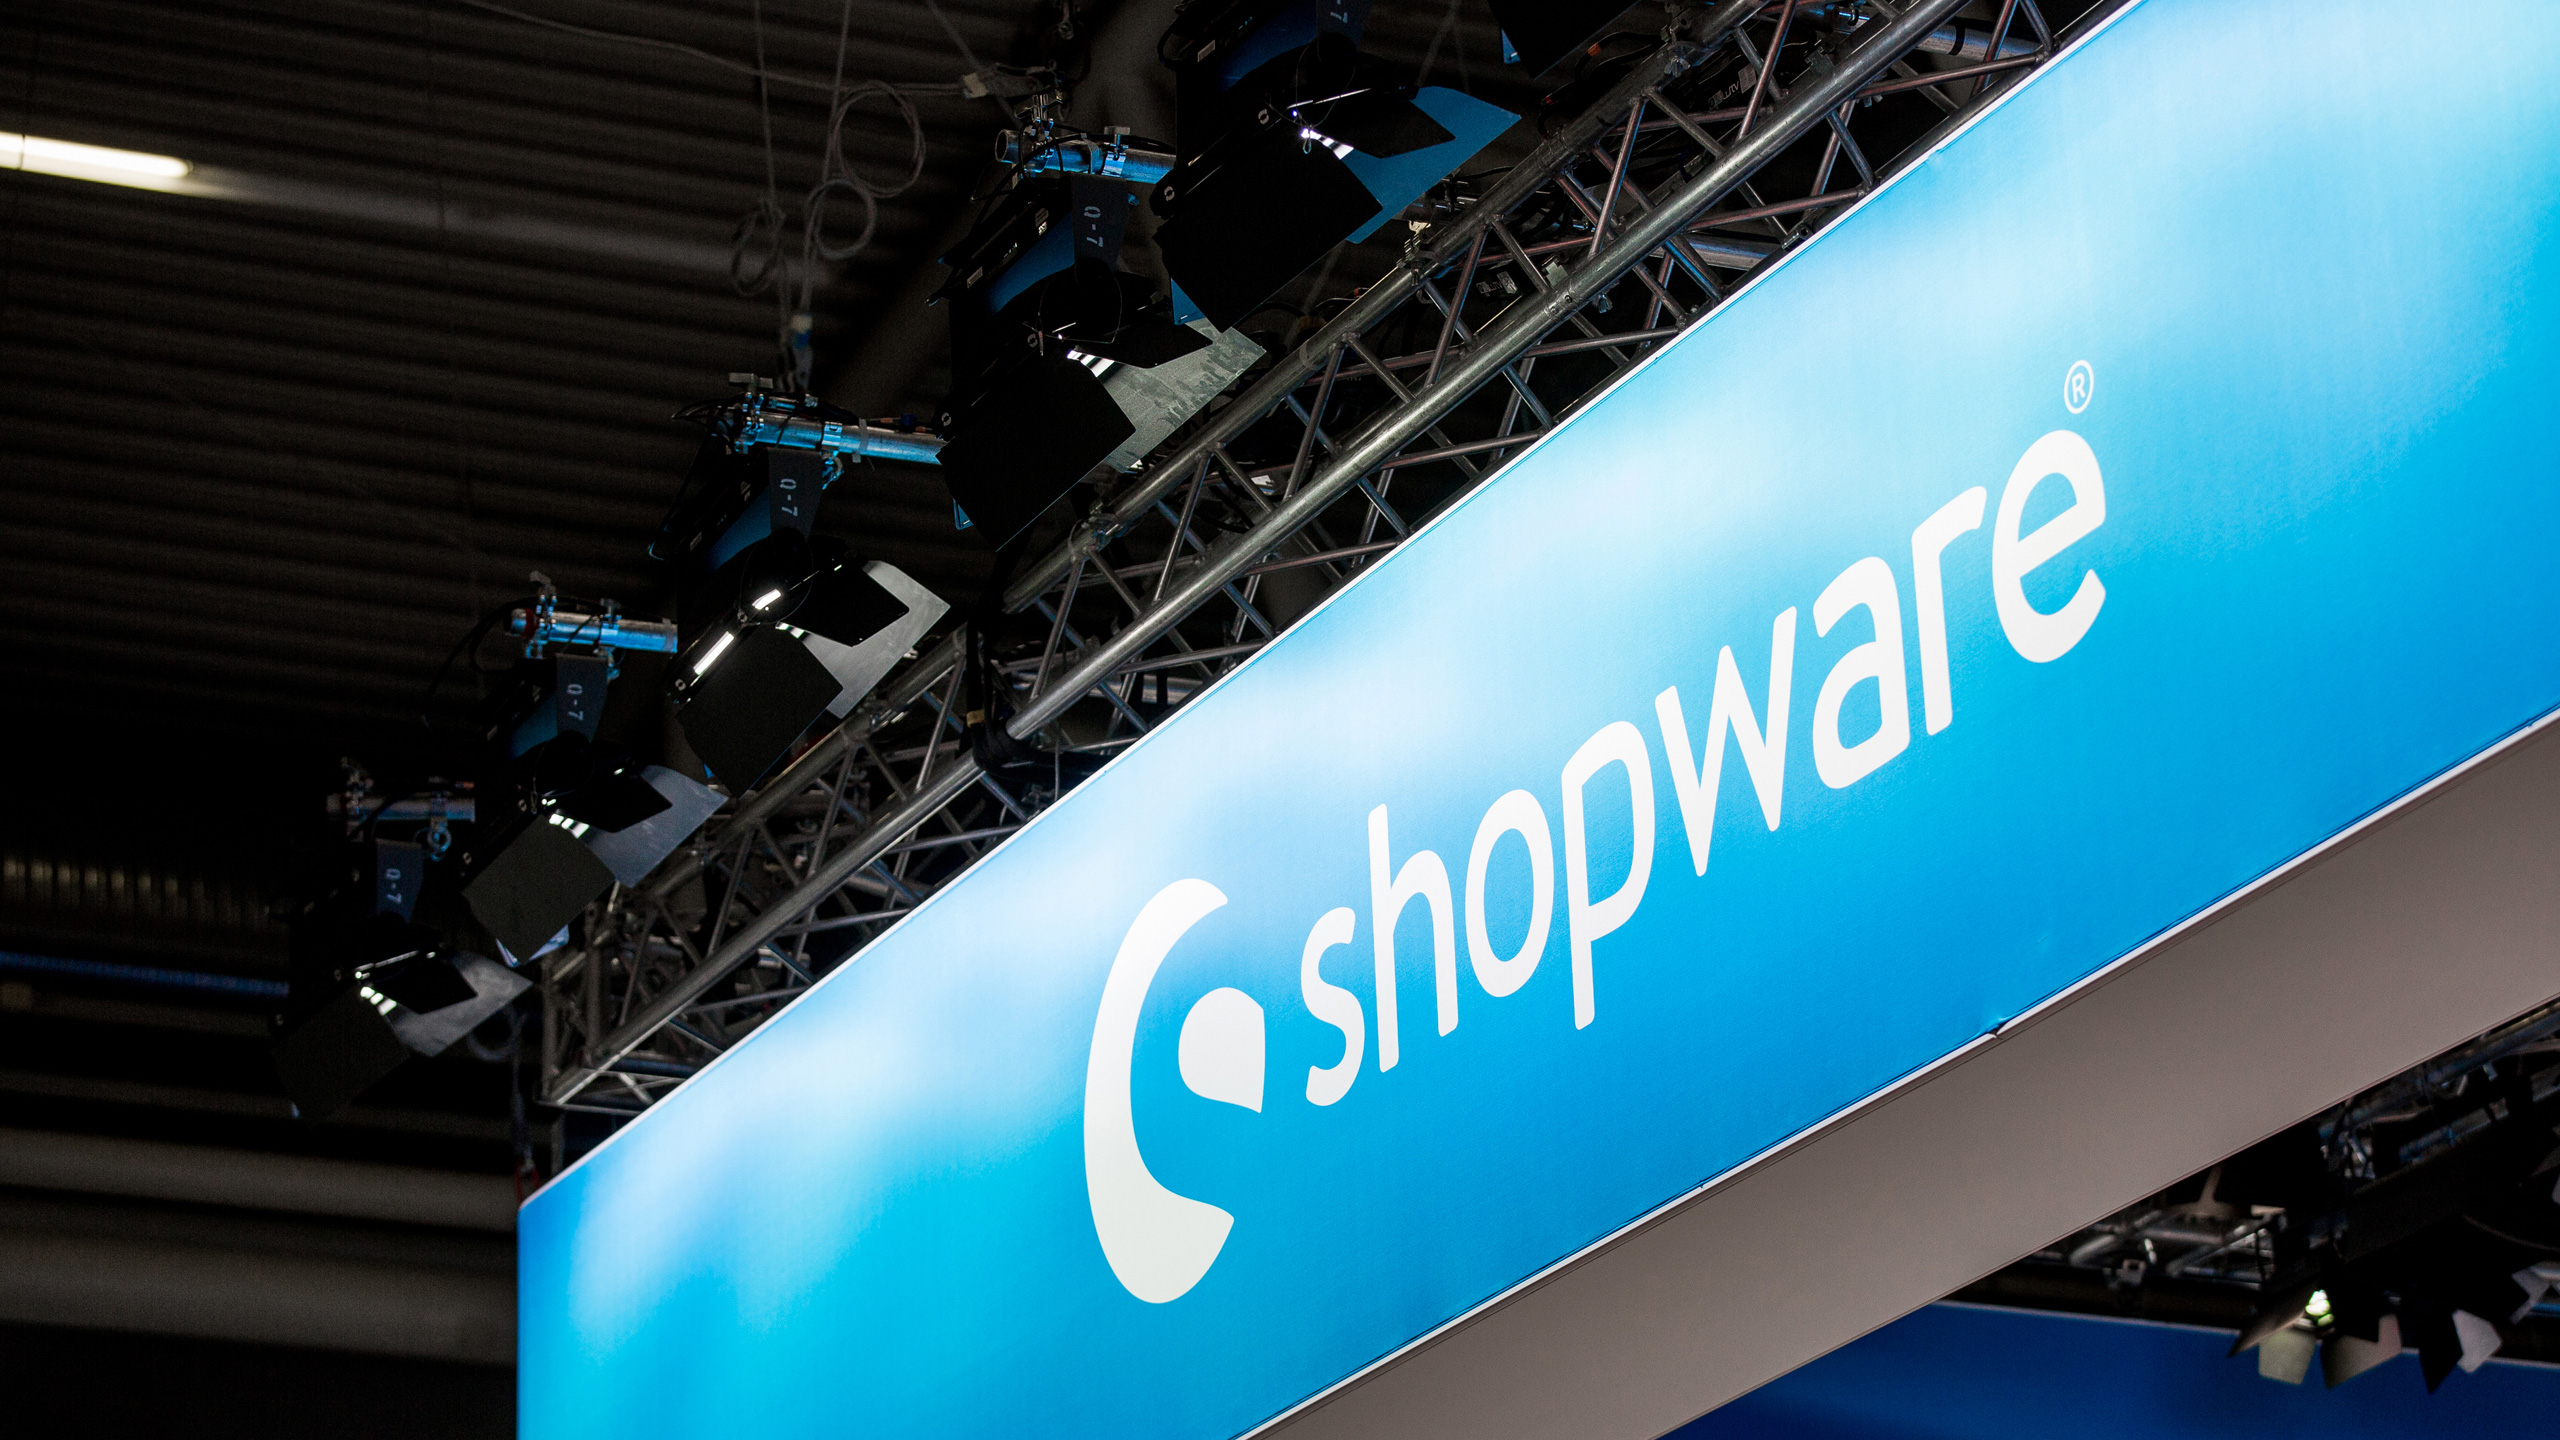 shopware Internet World Expo 01